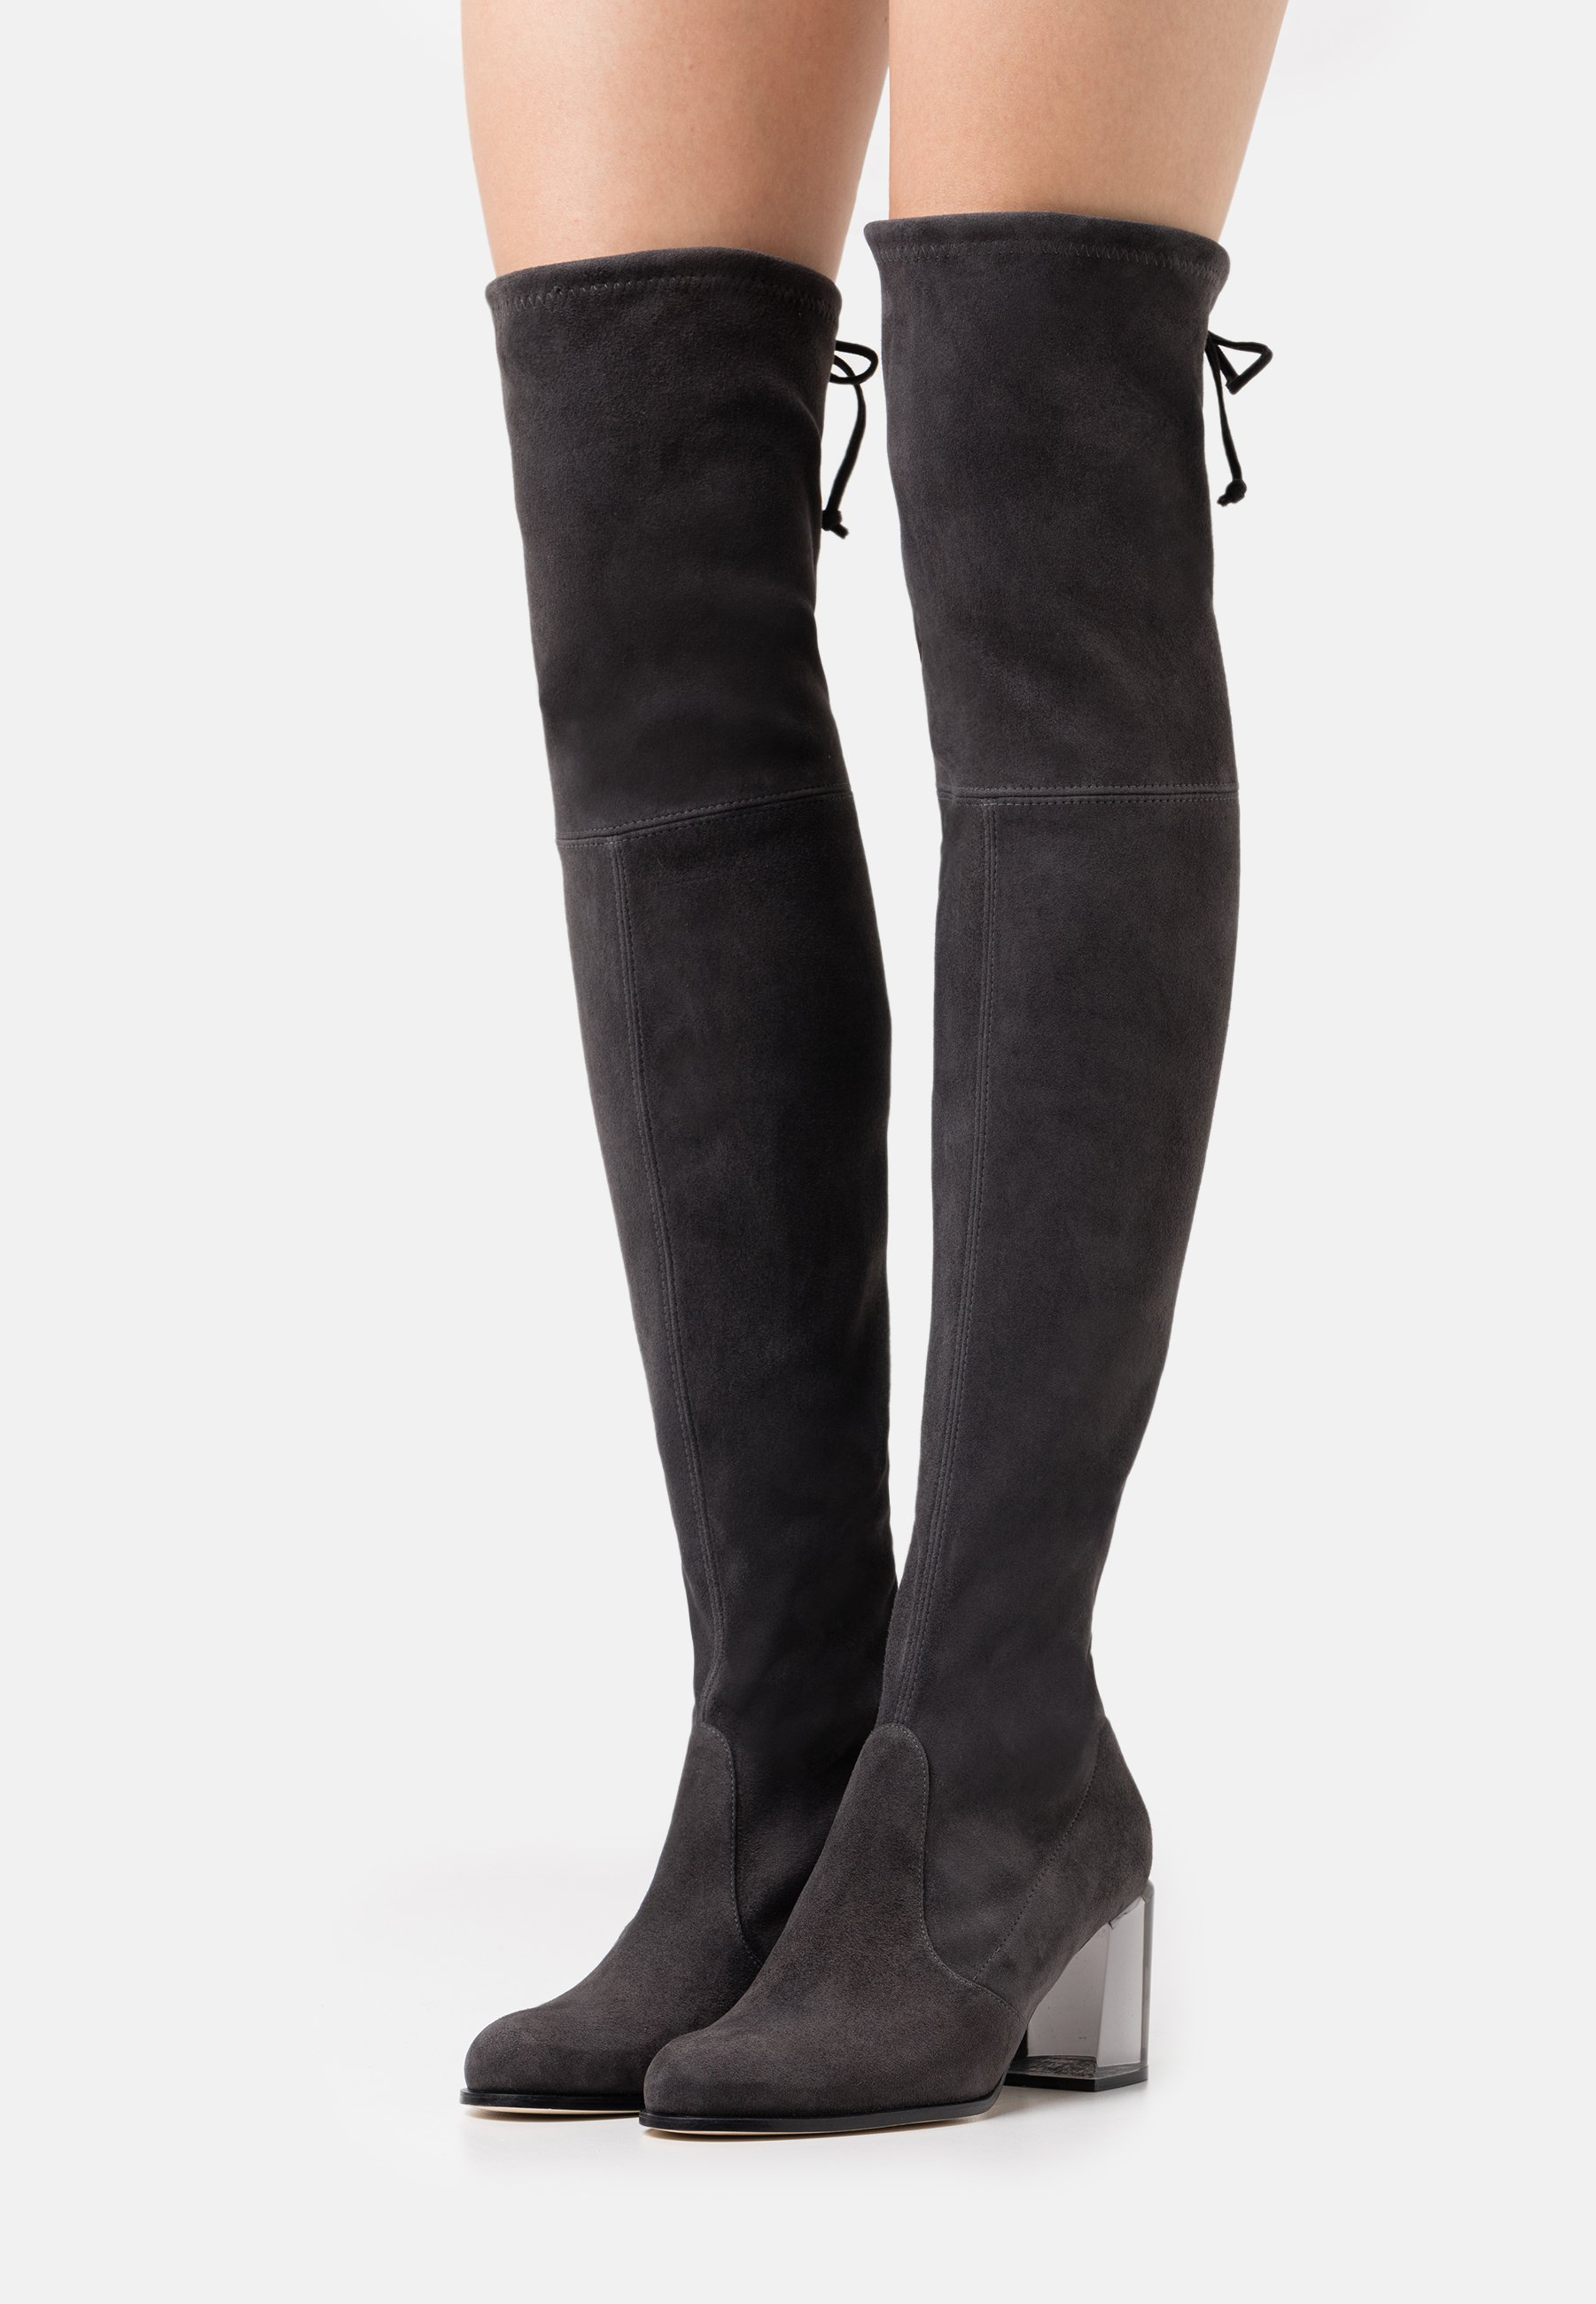 Femme LOULOU BOOT - Cuissardes